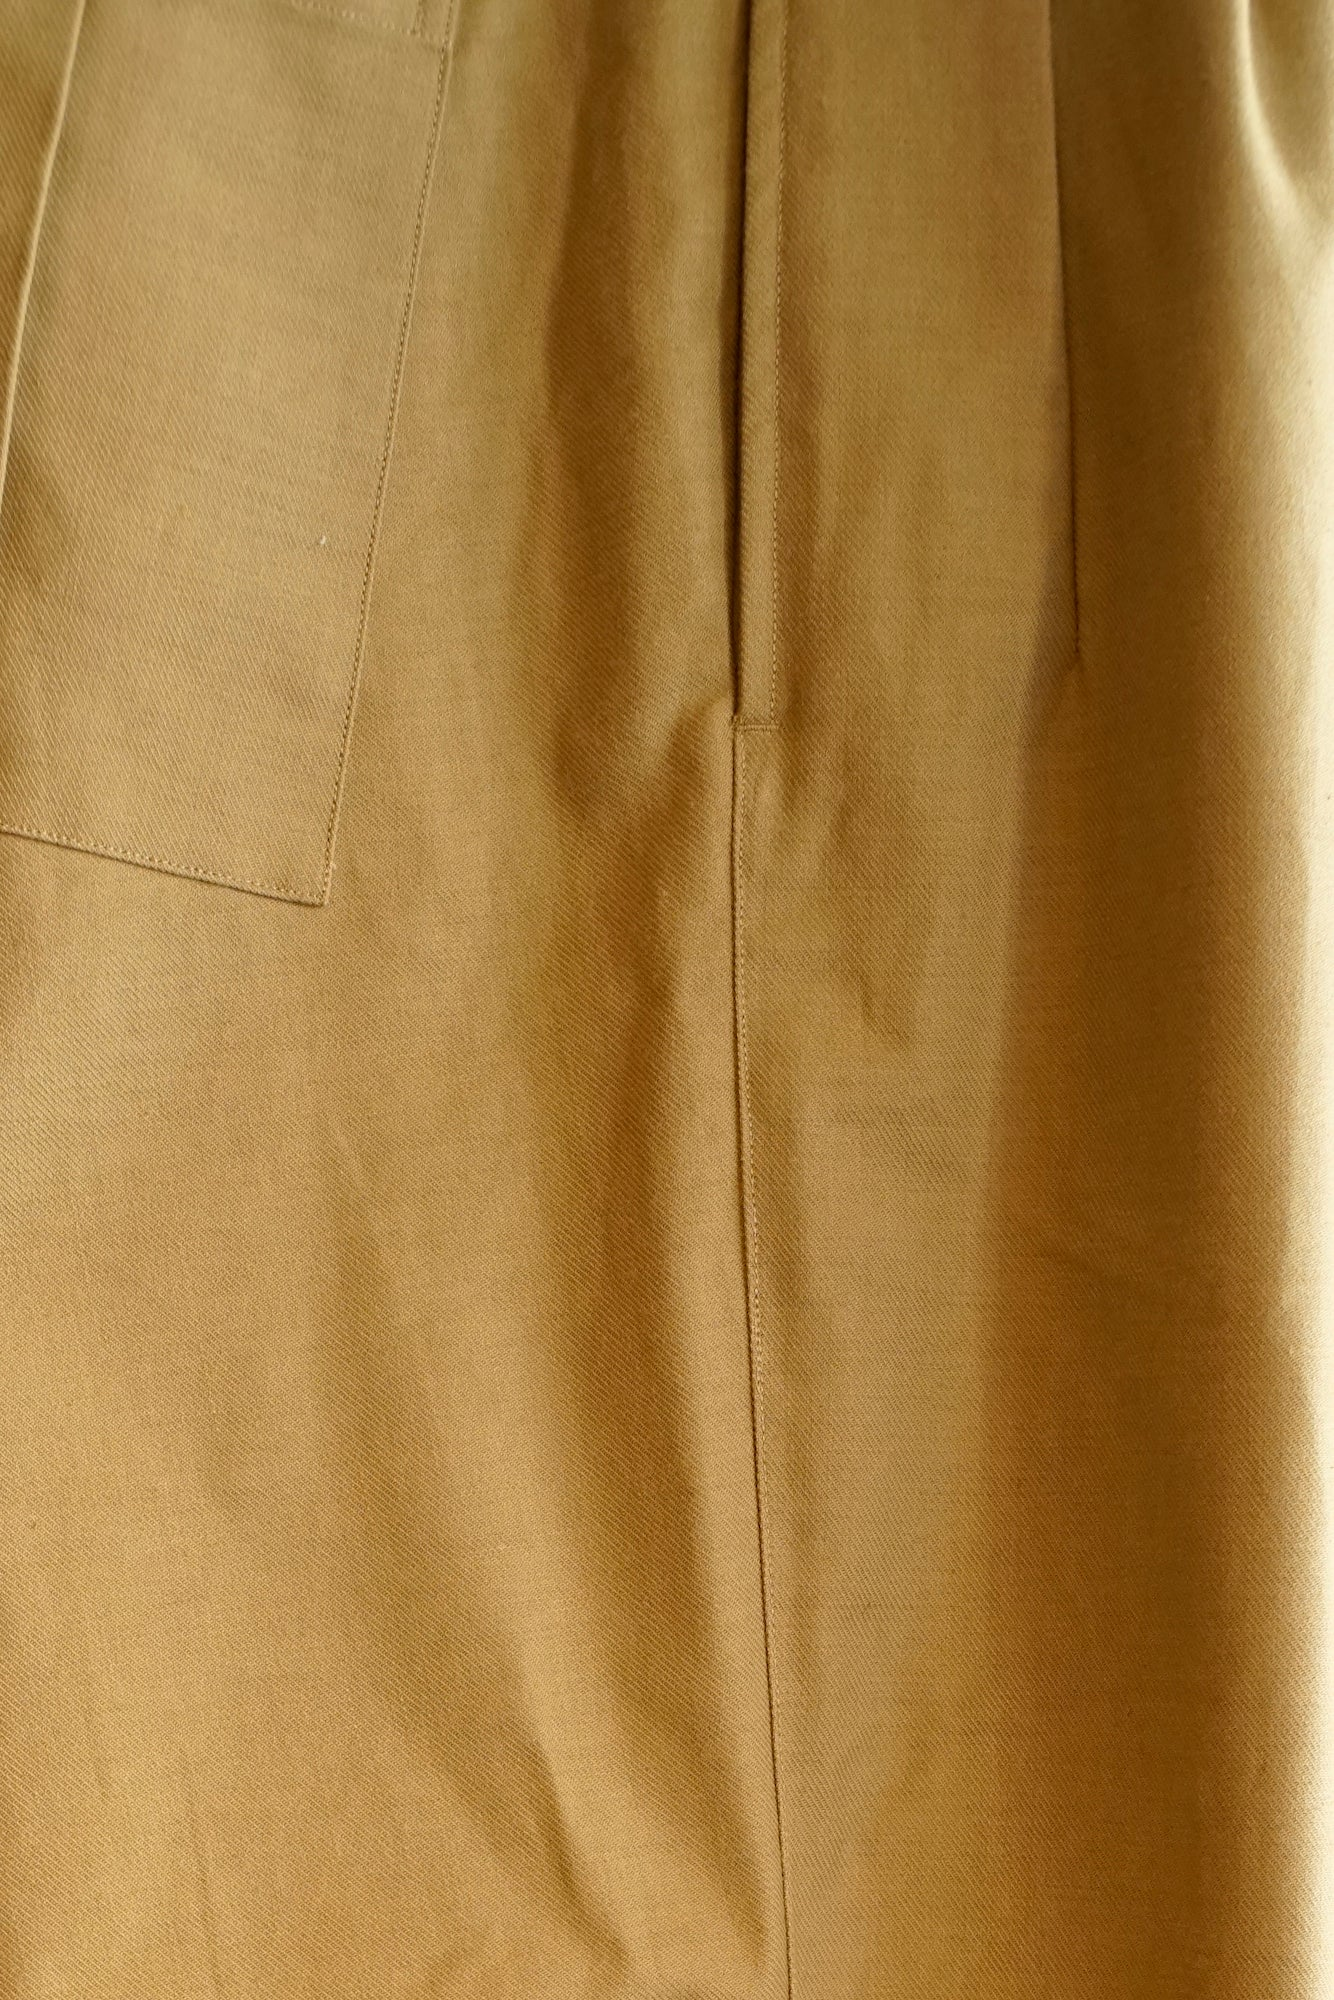 SIDE BUCKLE GRUKHA TROUSER - 201OJ-PT11